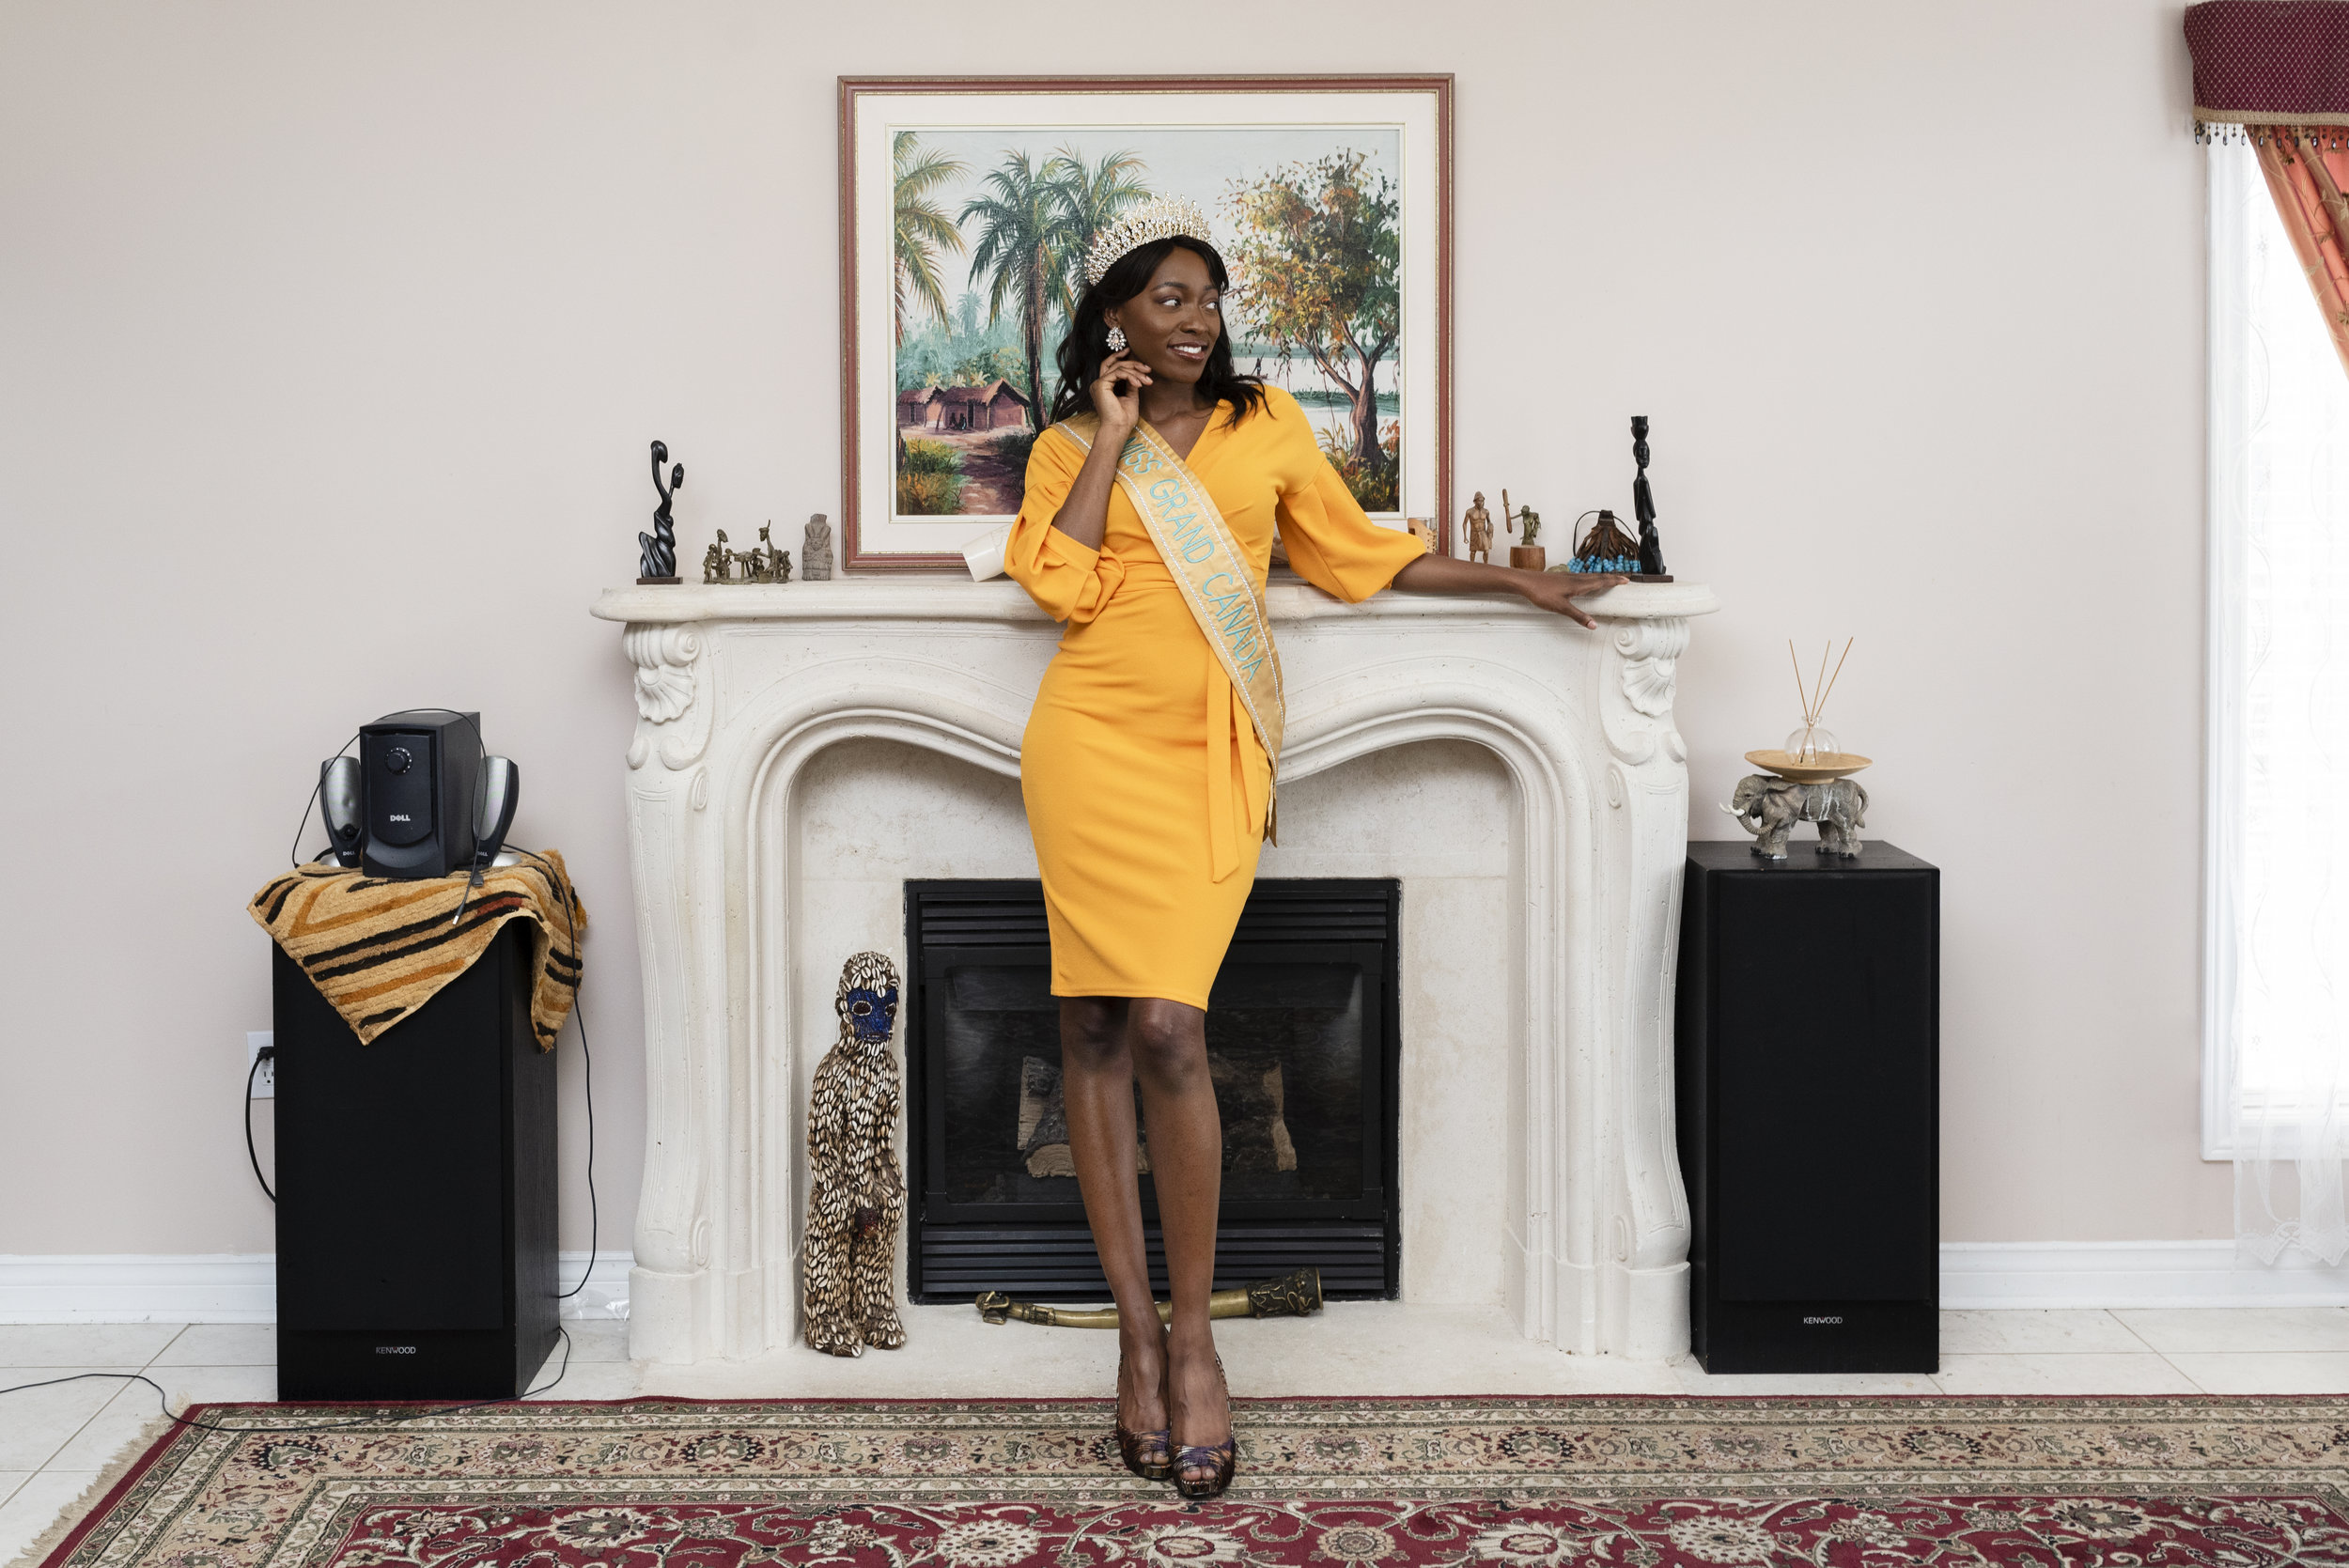 Grace Diamani, 26, is currently living in Ottawa and attending Carleton University for Sociology. She was crowned Miss Grand Canada 2018, and is currently competing in Miss Universe Canada. Taken in her childhood home, Whitby, Ontario, on July 27, 2019.